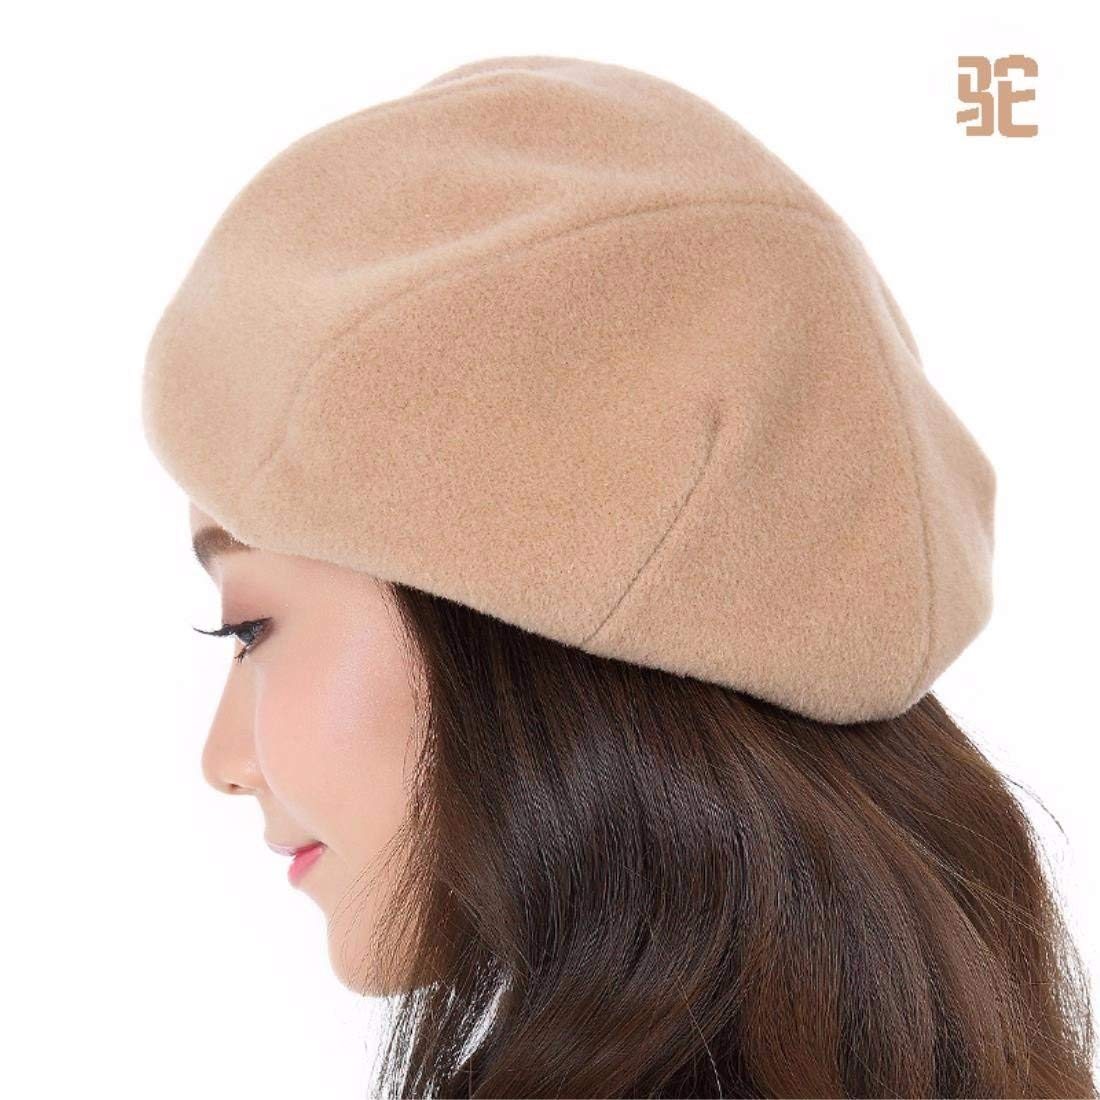 Thundertechs The Stylish Cap Winter The Tide Fall Winter hat Female New Bailey (Color : Brown, Size : L (58-60CM))